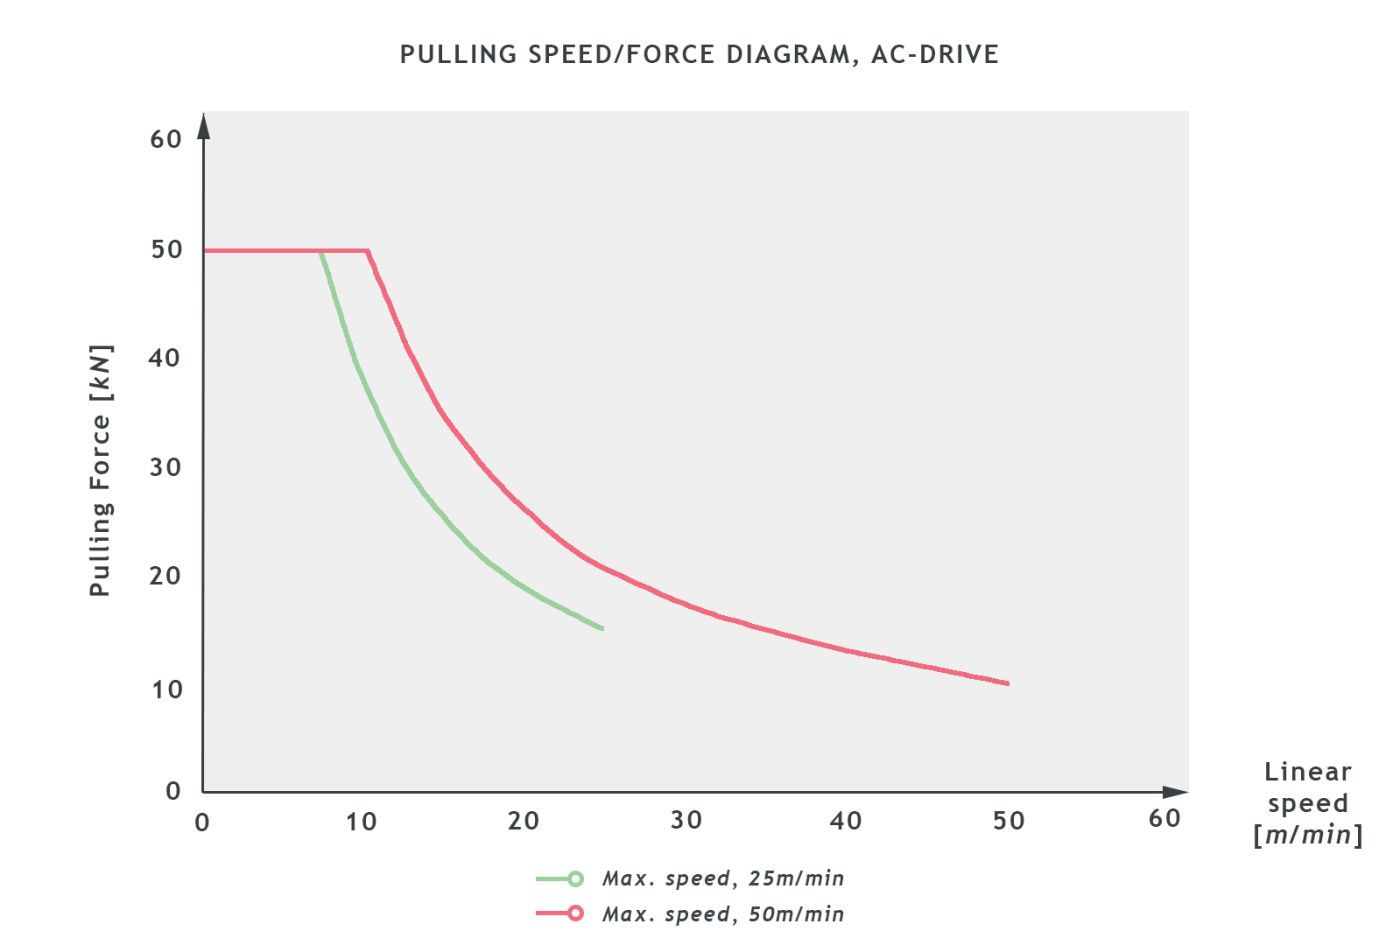 BCA42_SB0601028_PULLING_SPEED_graph1.jpg